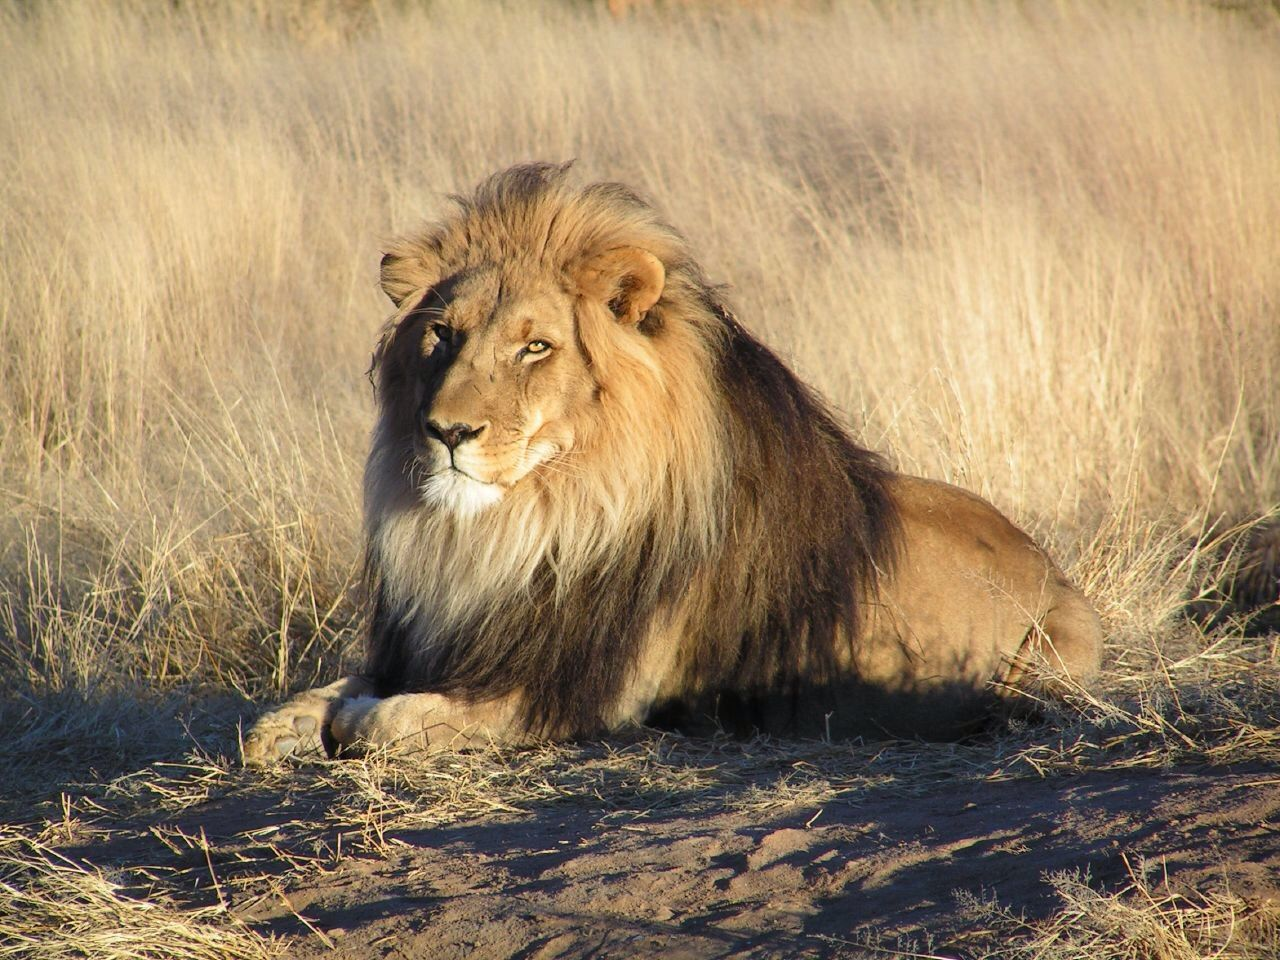 Tragedy of Cecil the lion #cats #bigcats #cecilthelion